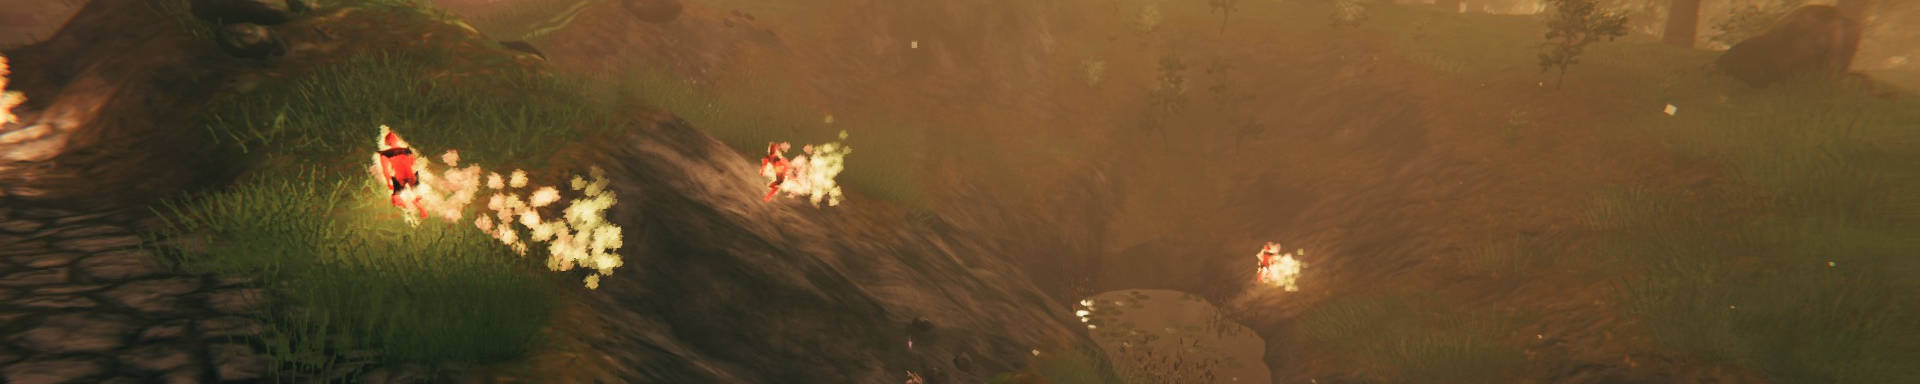 Valheim The Forest is Moving Base Raids Guía Surtlings